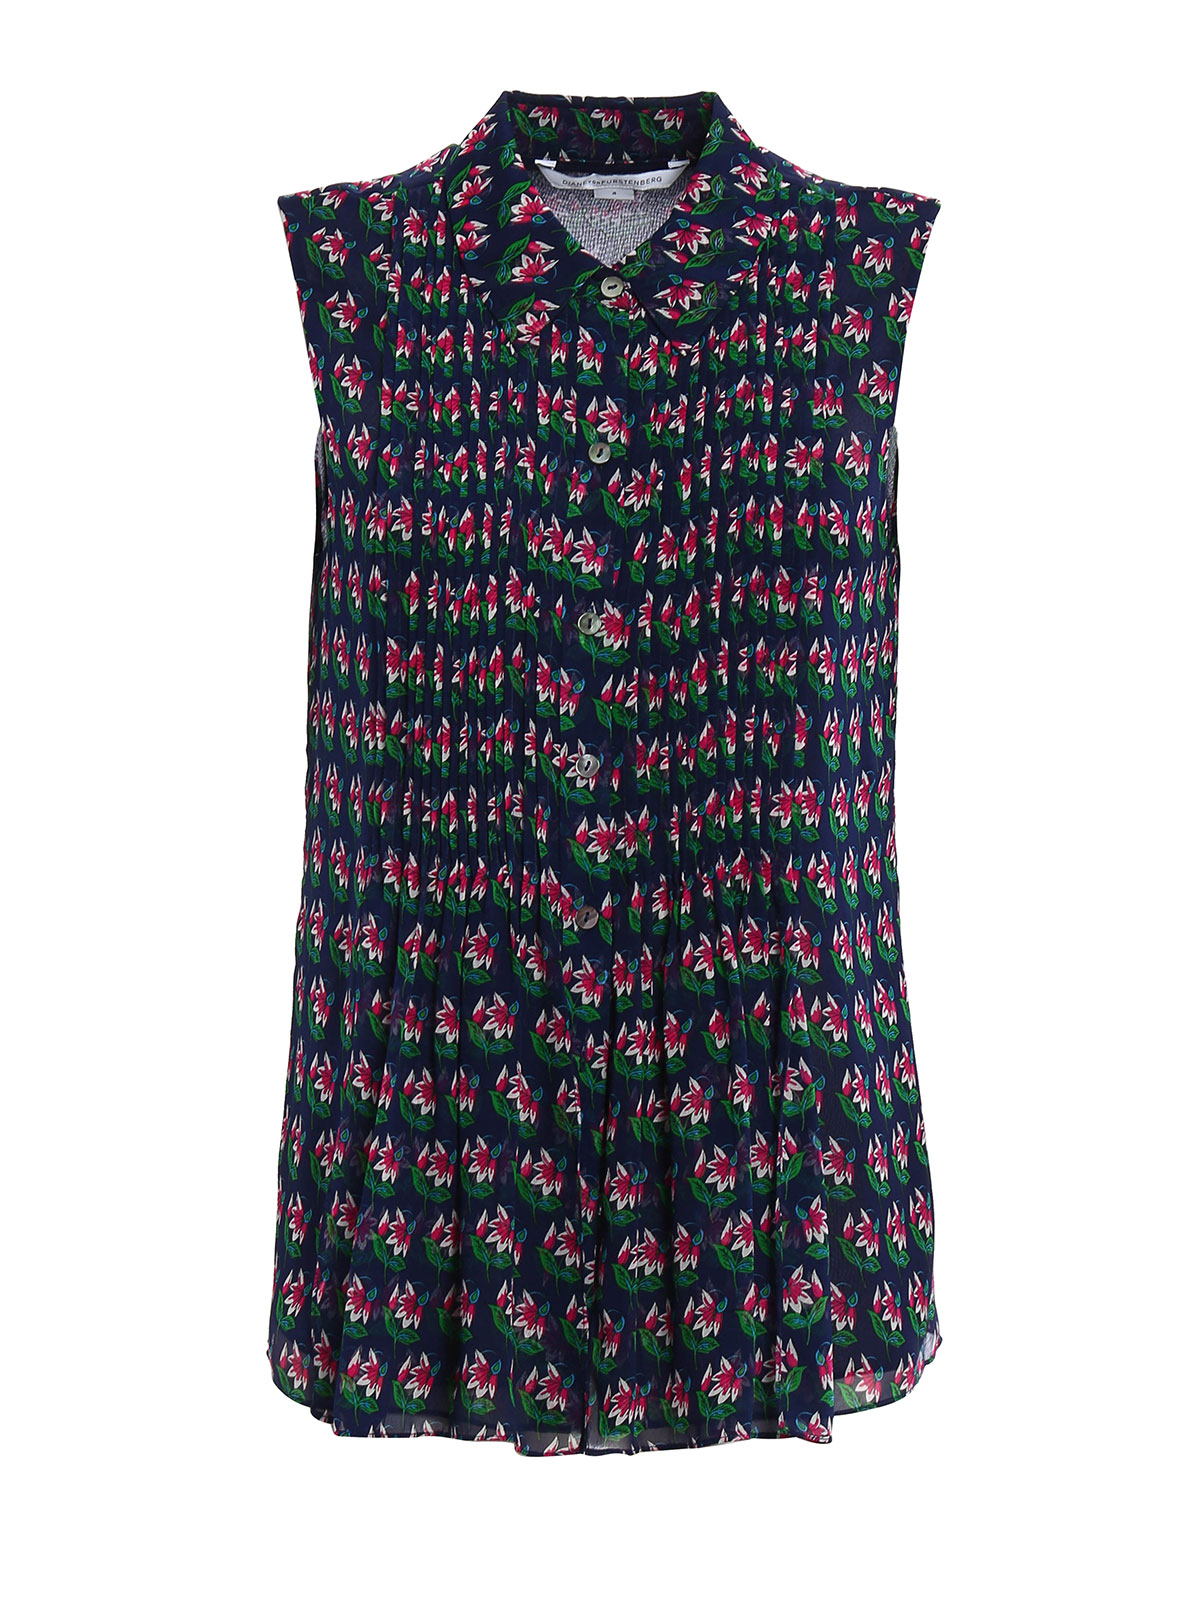 Blakely Sleeveless Shirt By Diane Von Furstenberg Shirts